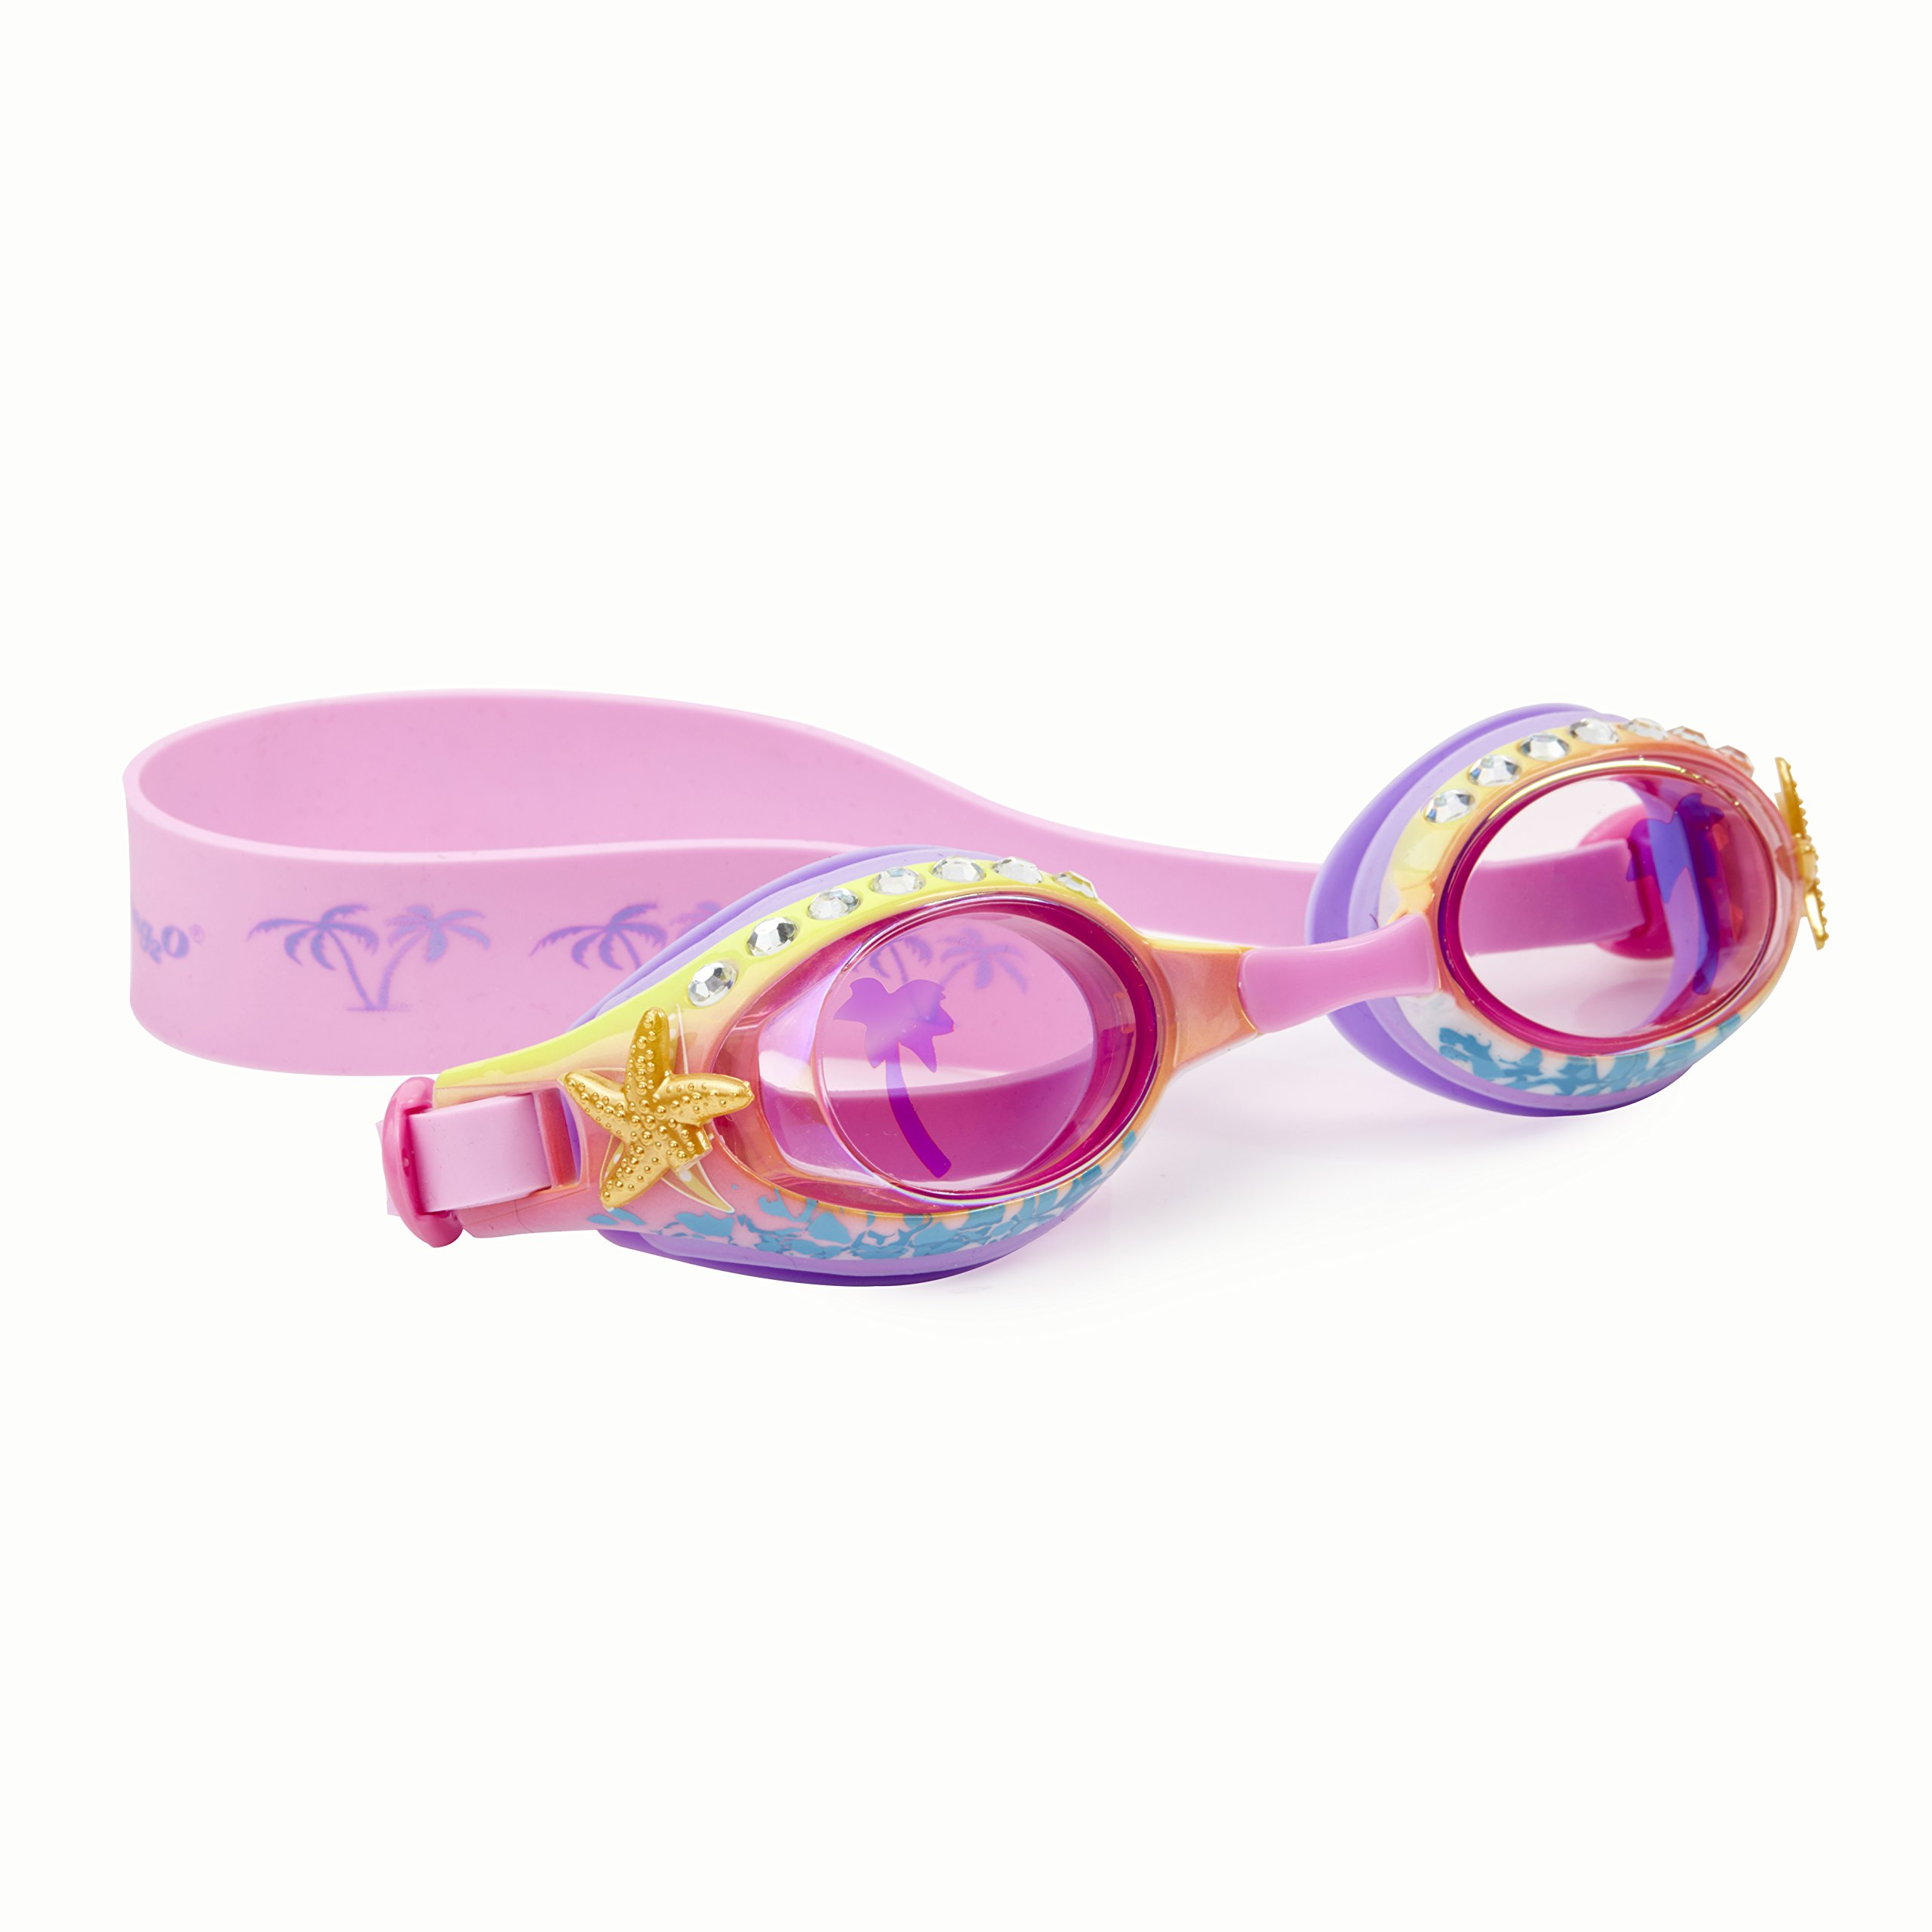 Beach Themed Swimming Goggles For Kids by Bling2O - Anti Fog, No Leak, Non Slip and UV Protection - Pink Sand Colored Fun Water Accessory Includes Hard Case